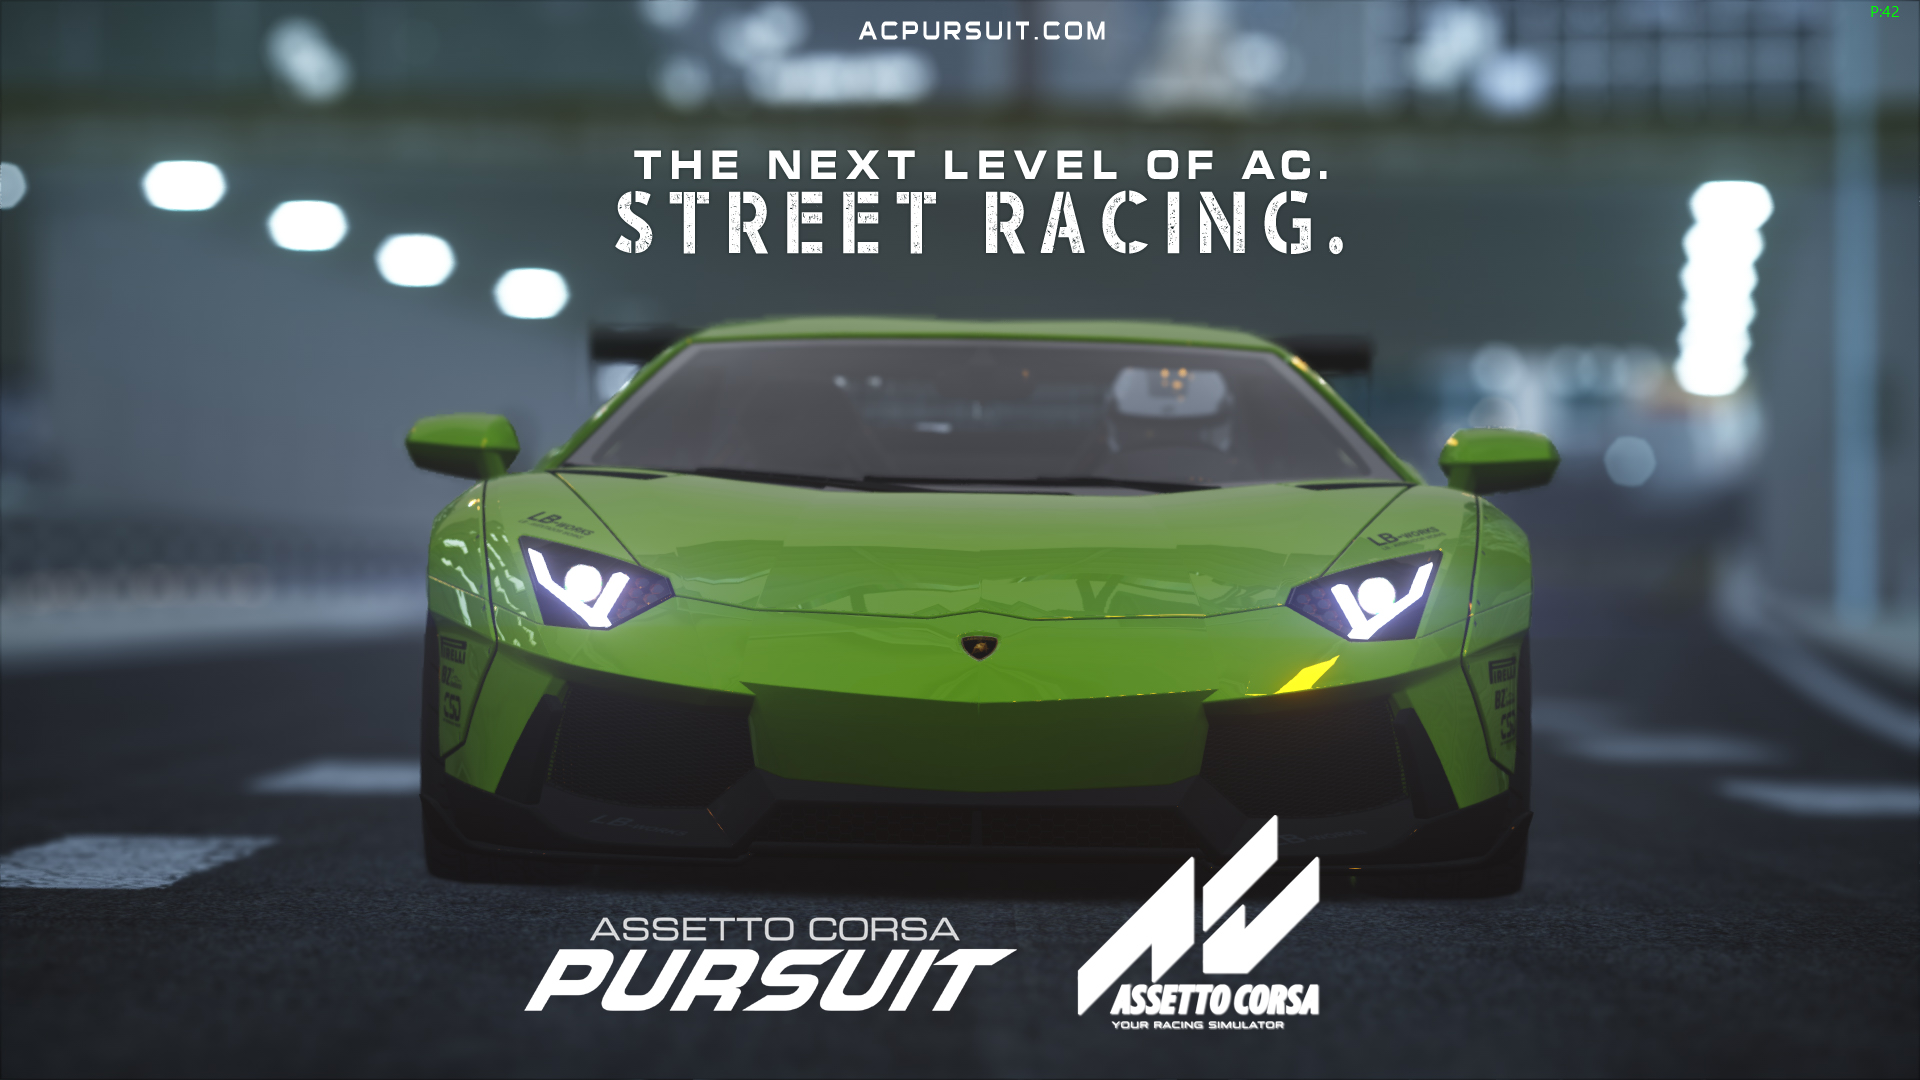 NEW HOW IT WORKS – ASSETTO CORSA PURSUIT – Free roaming